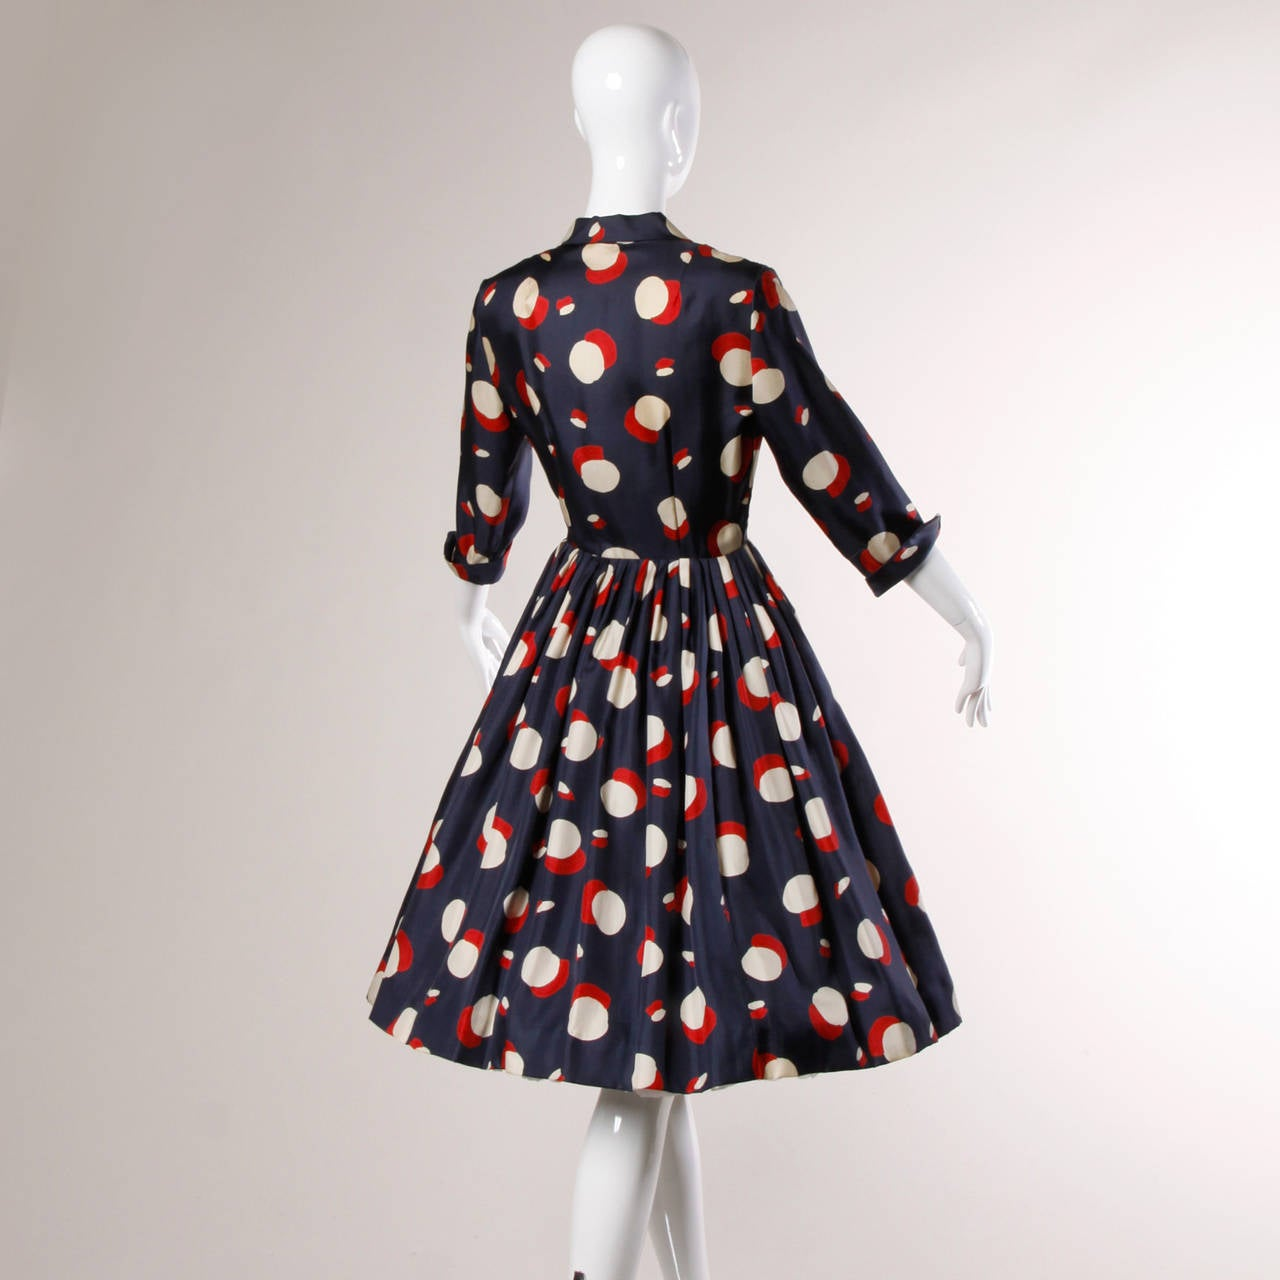 1950s New Look Vintage Polka Dot Print Silk Dress with a Full Sweep 2